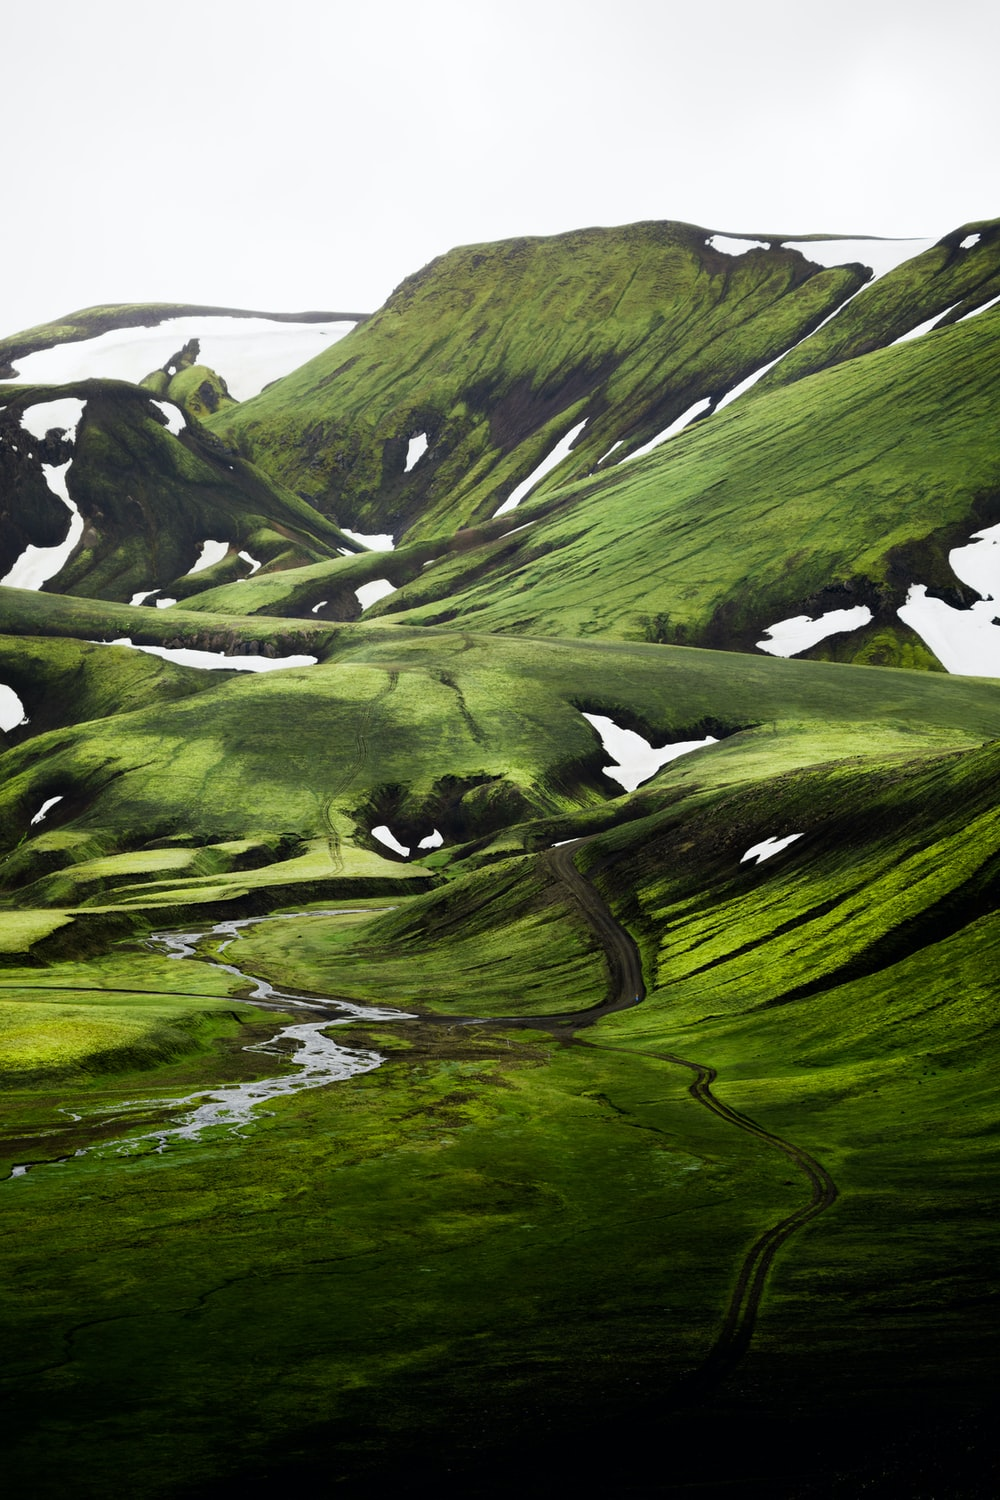 green moss on rock formation